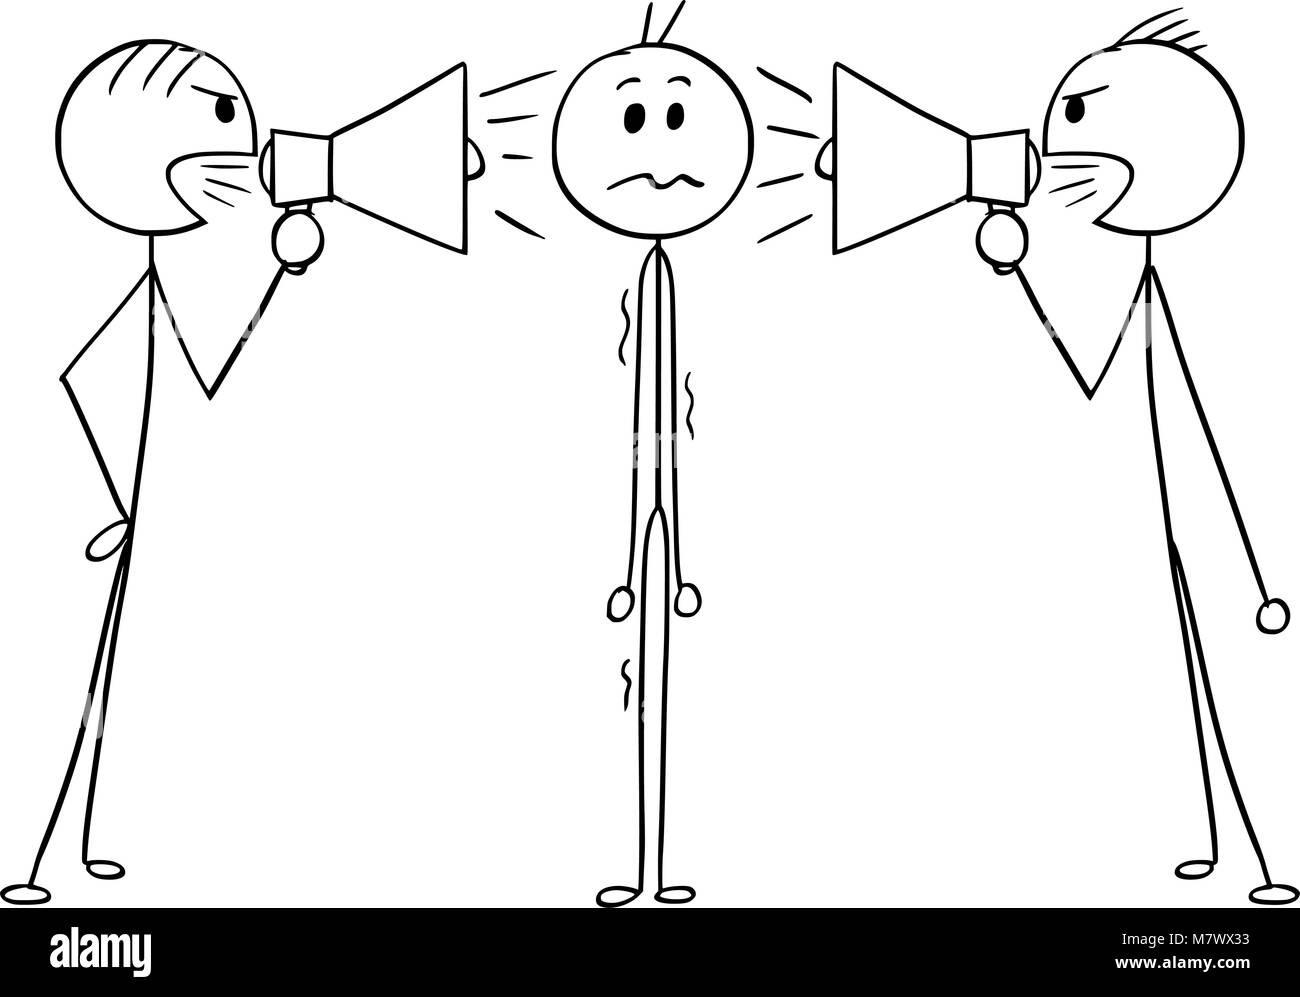 Cartoon of Man or Businessman Between Two Men With Loud Speakers - Stock Image